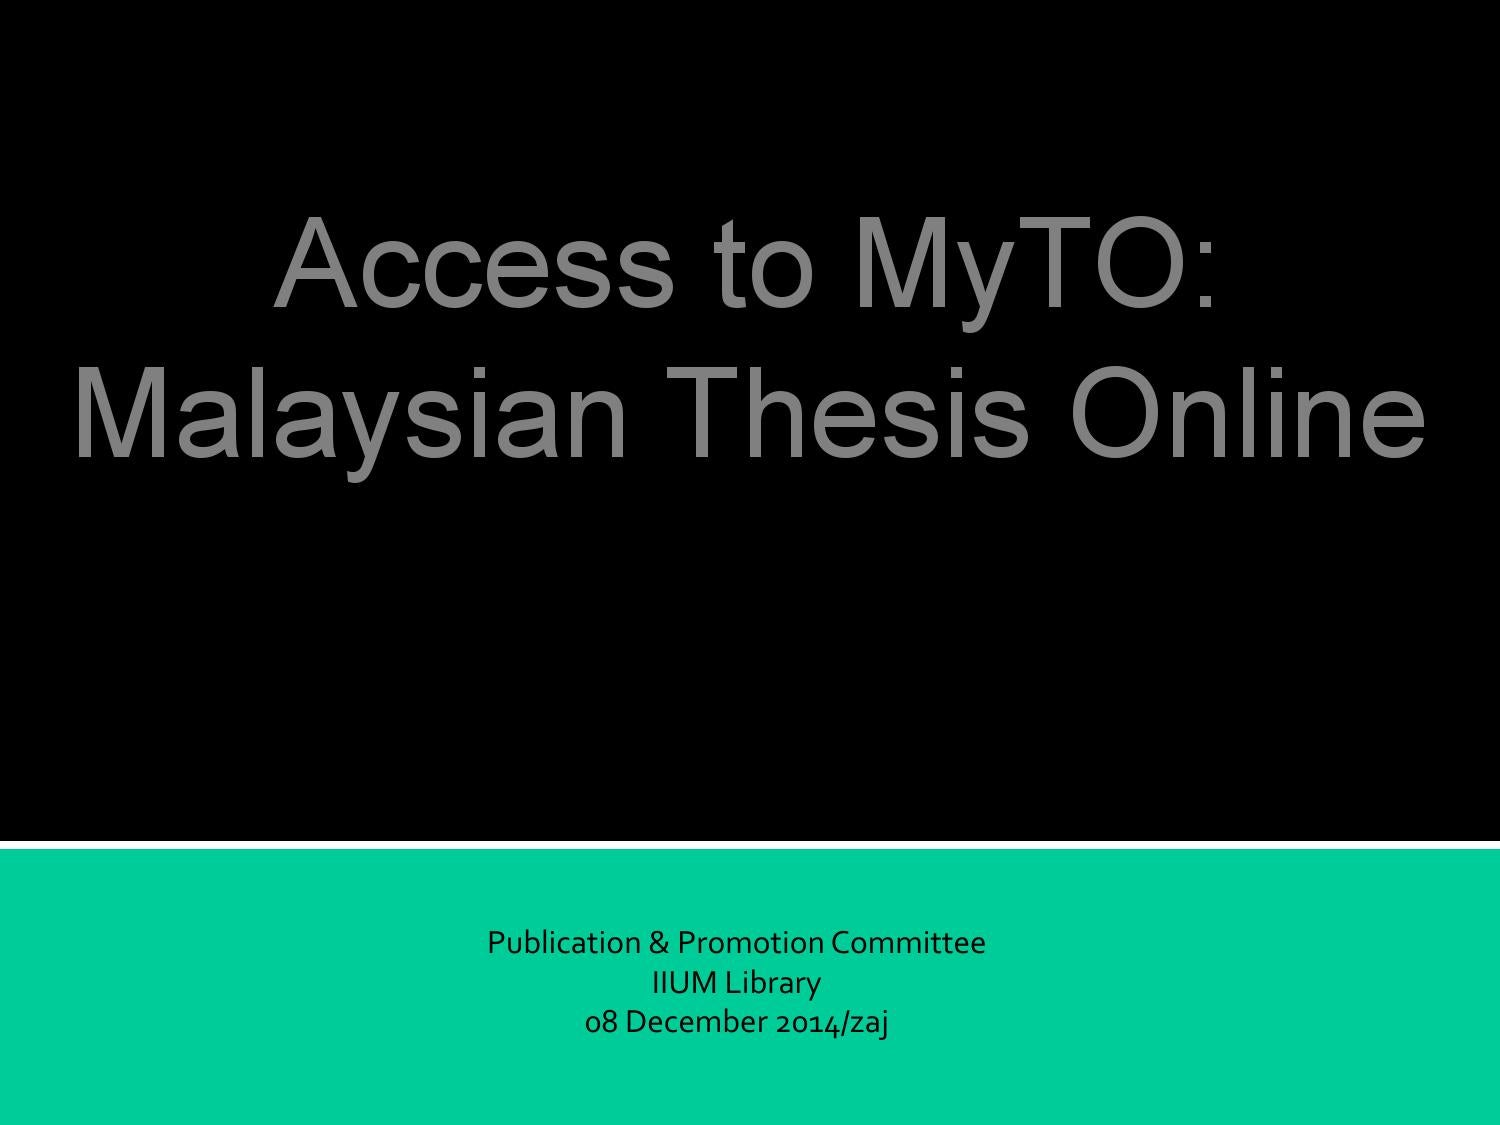 myto malaysian thesis online